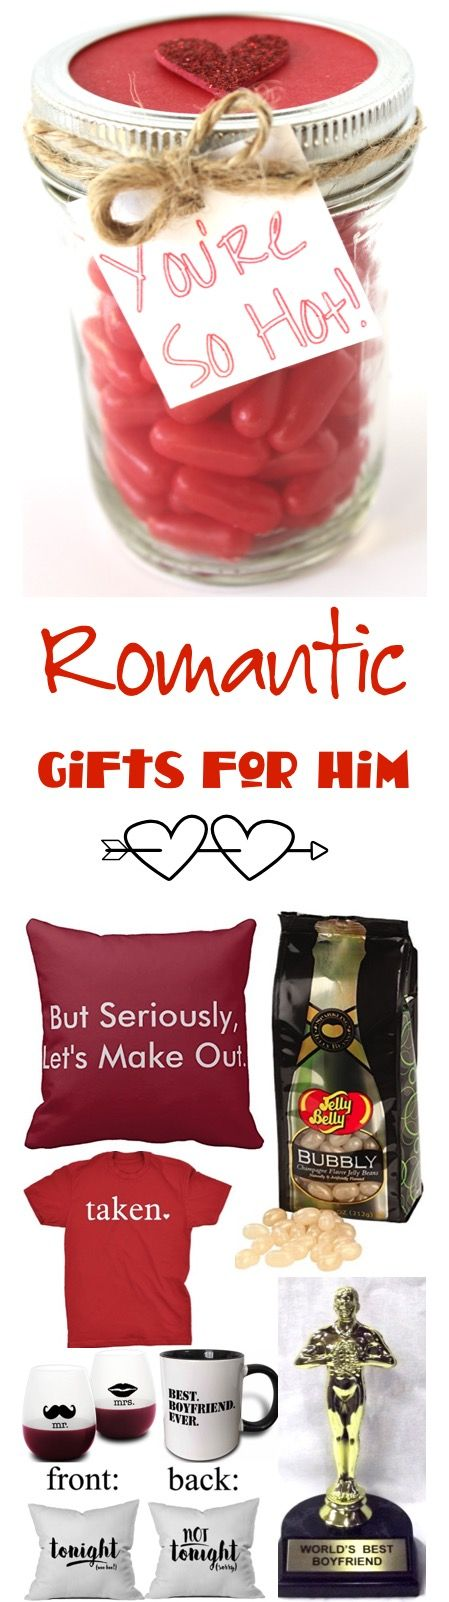 44 Romantic Gifts for Him! So many fun, silly, and romantic gifts for your boyfriend or husband! | TheFrugalGirls.com